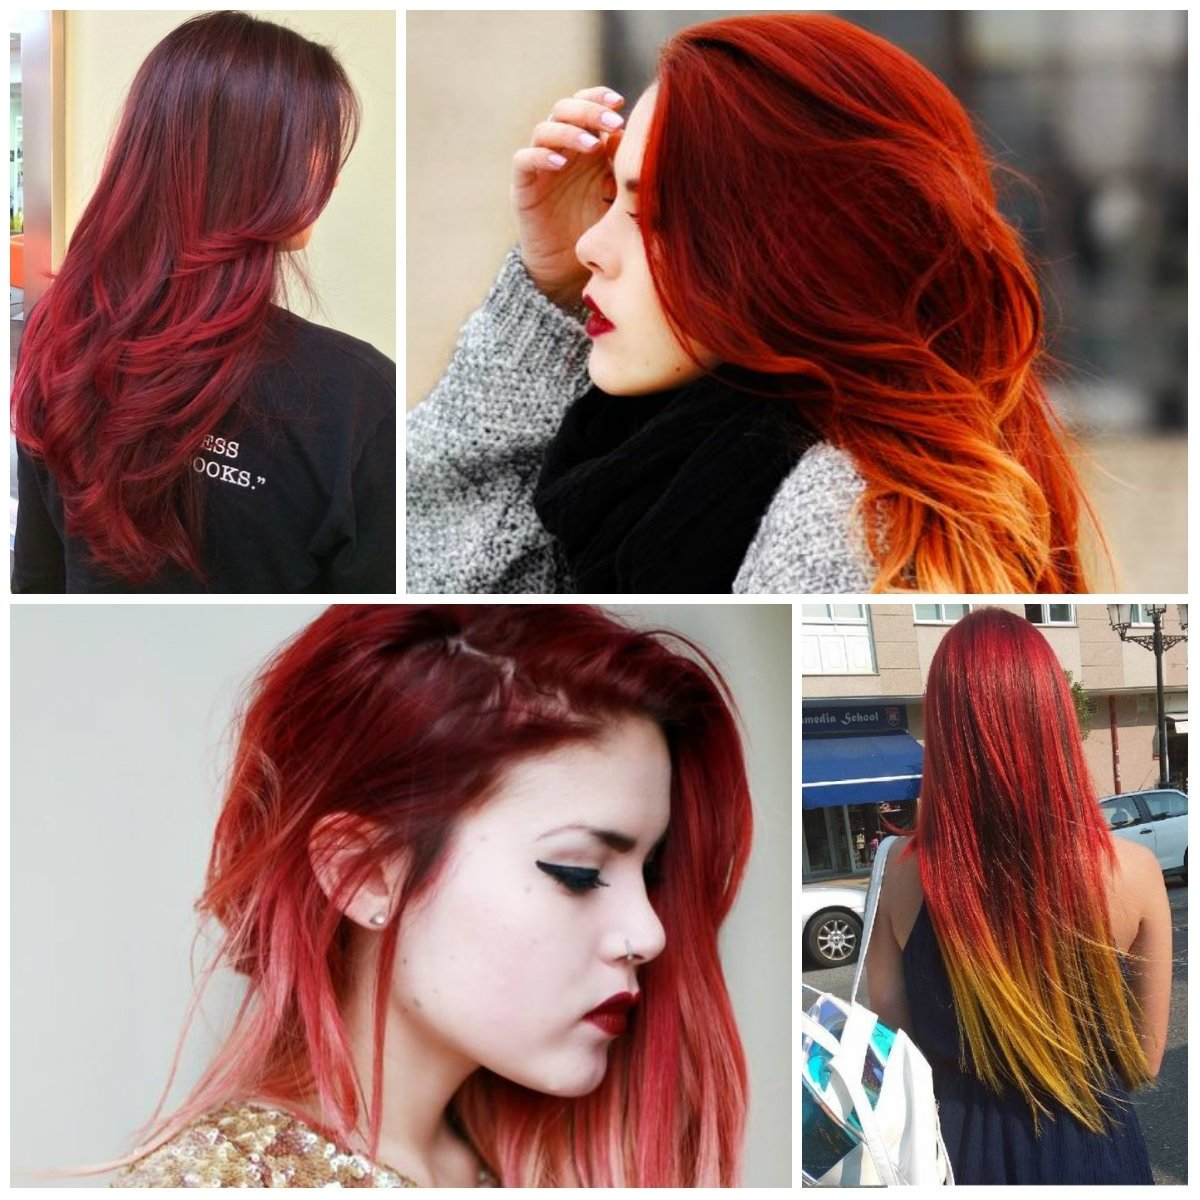 10 Ideal Hair Color Ideas For Redheads best hair color trends 2017 top hair color ideas for you page 2 2020